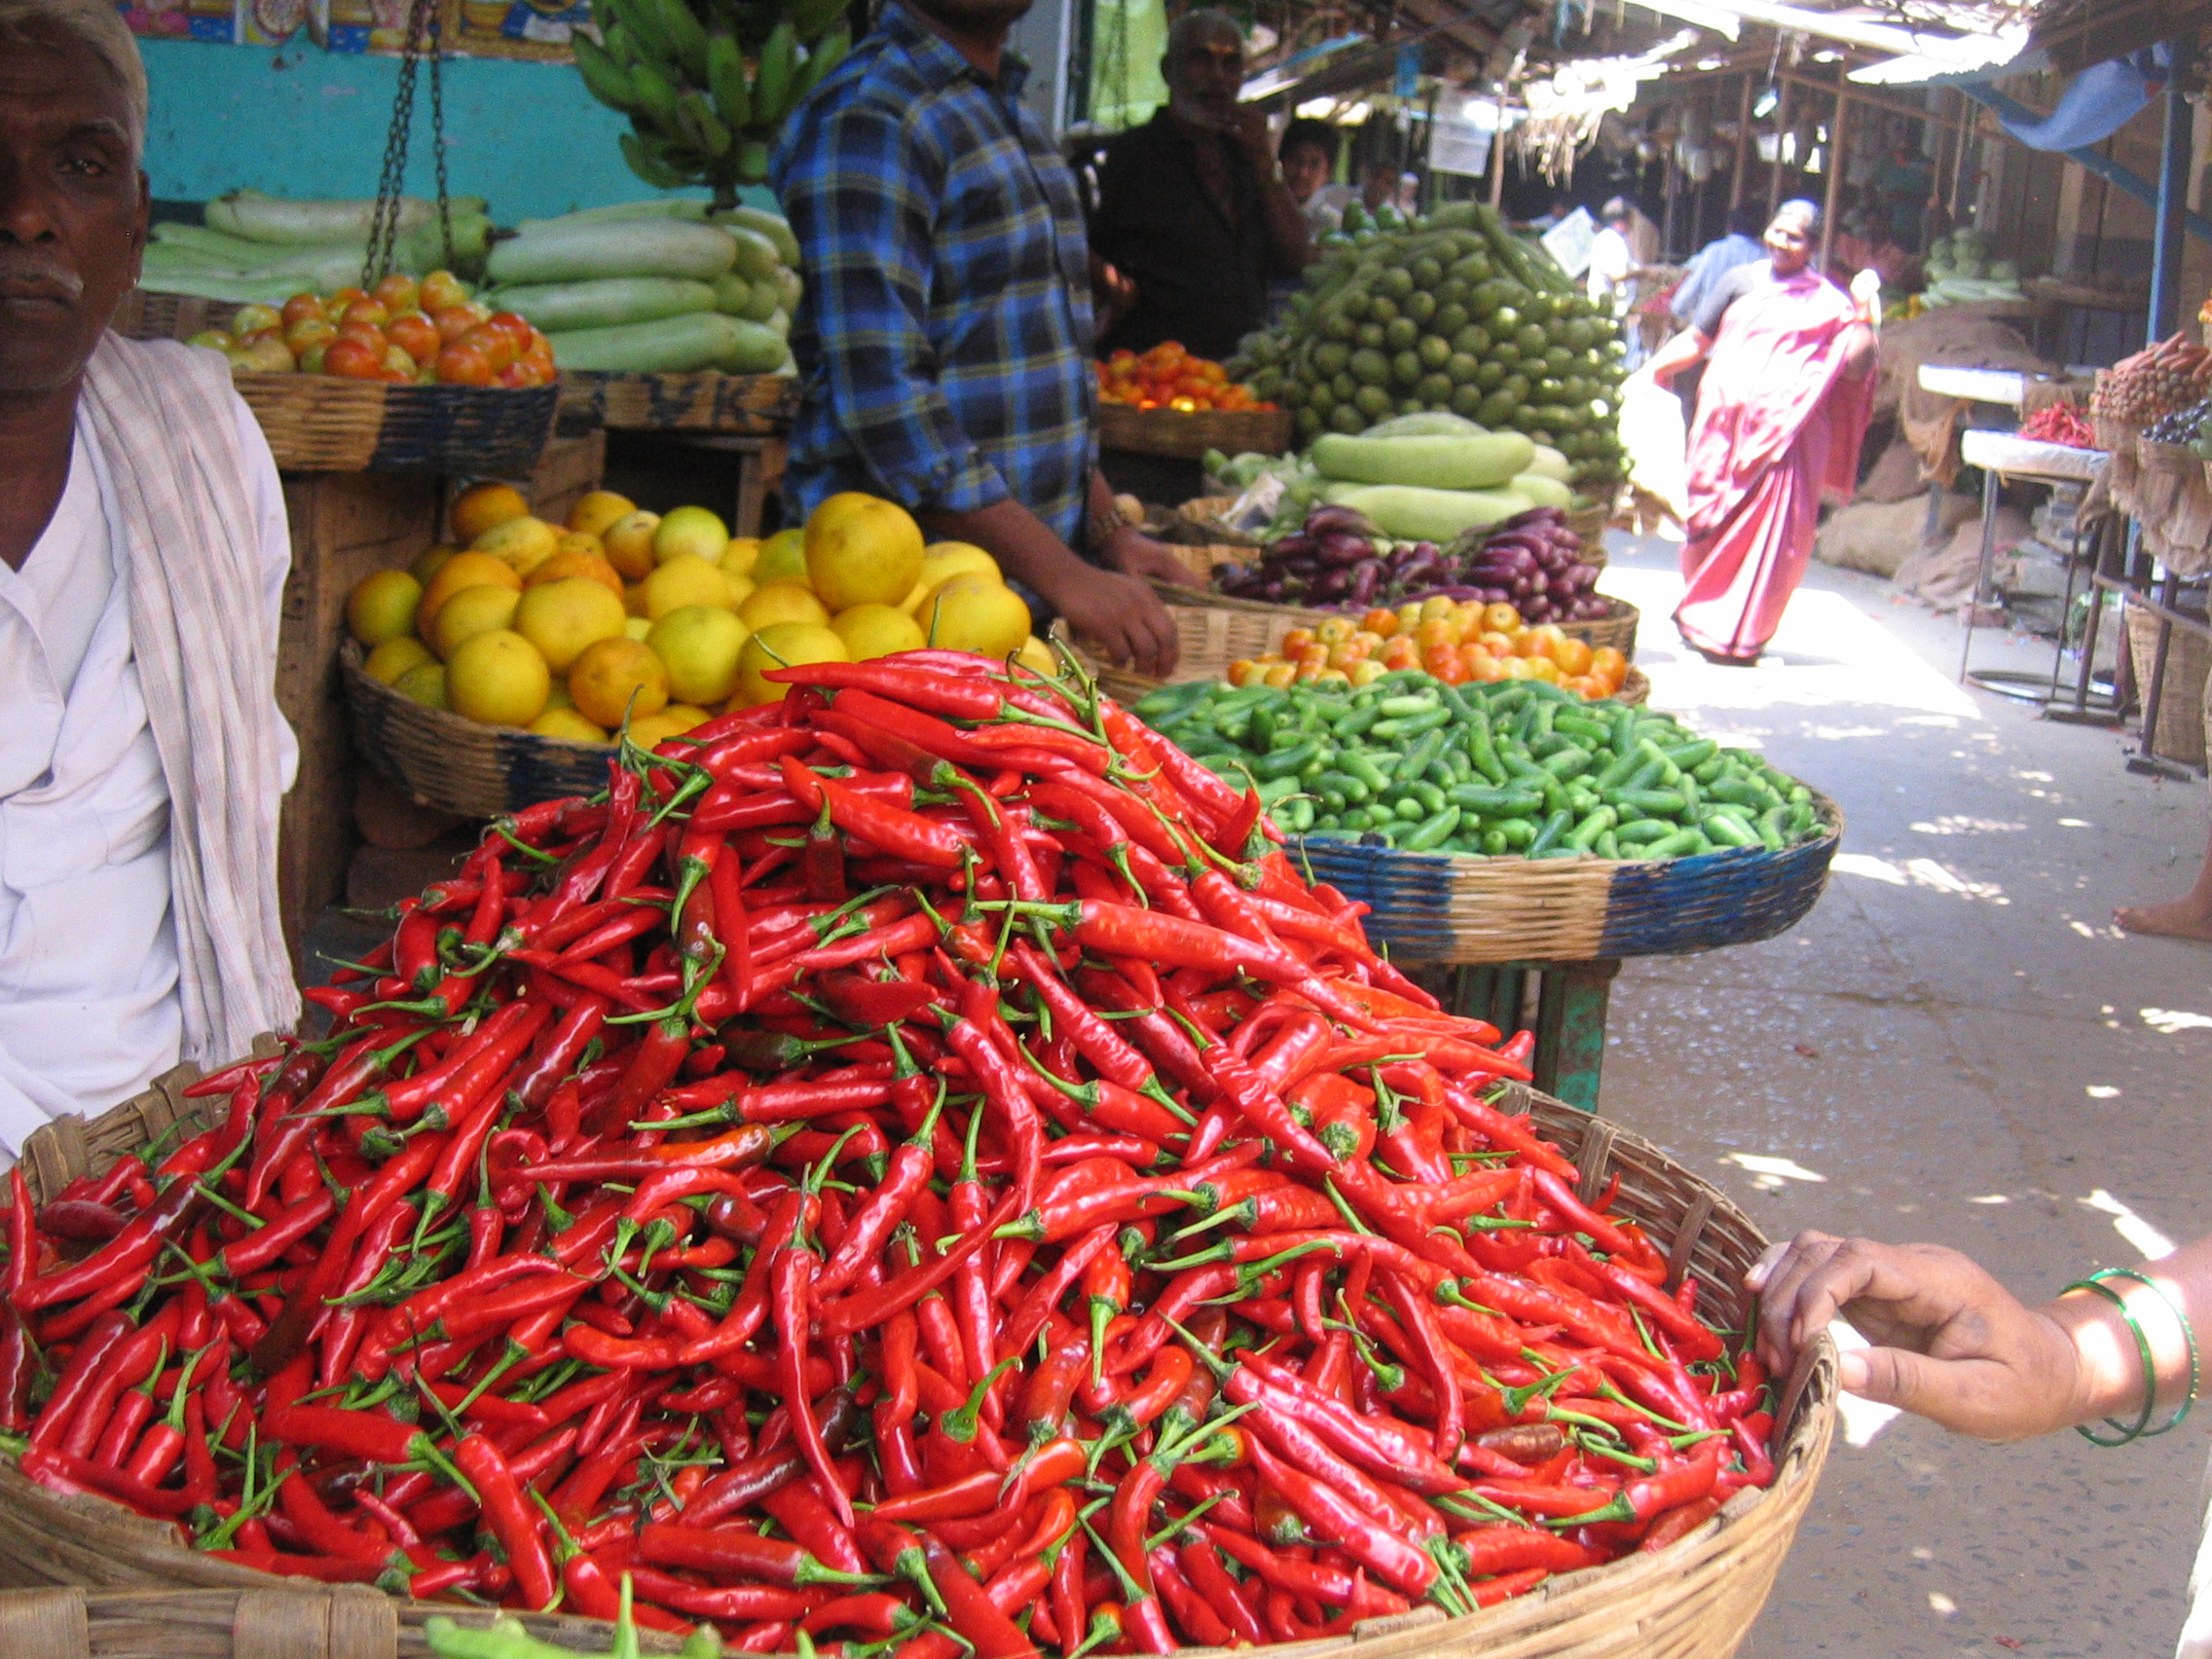 Vegetable market with baskets full of chillies and other vegetables